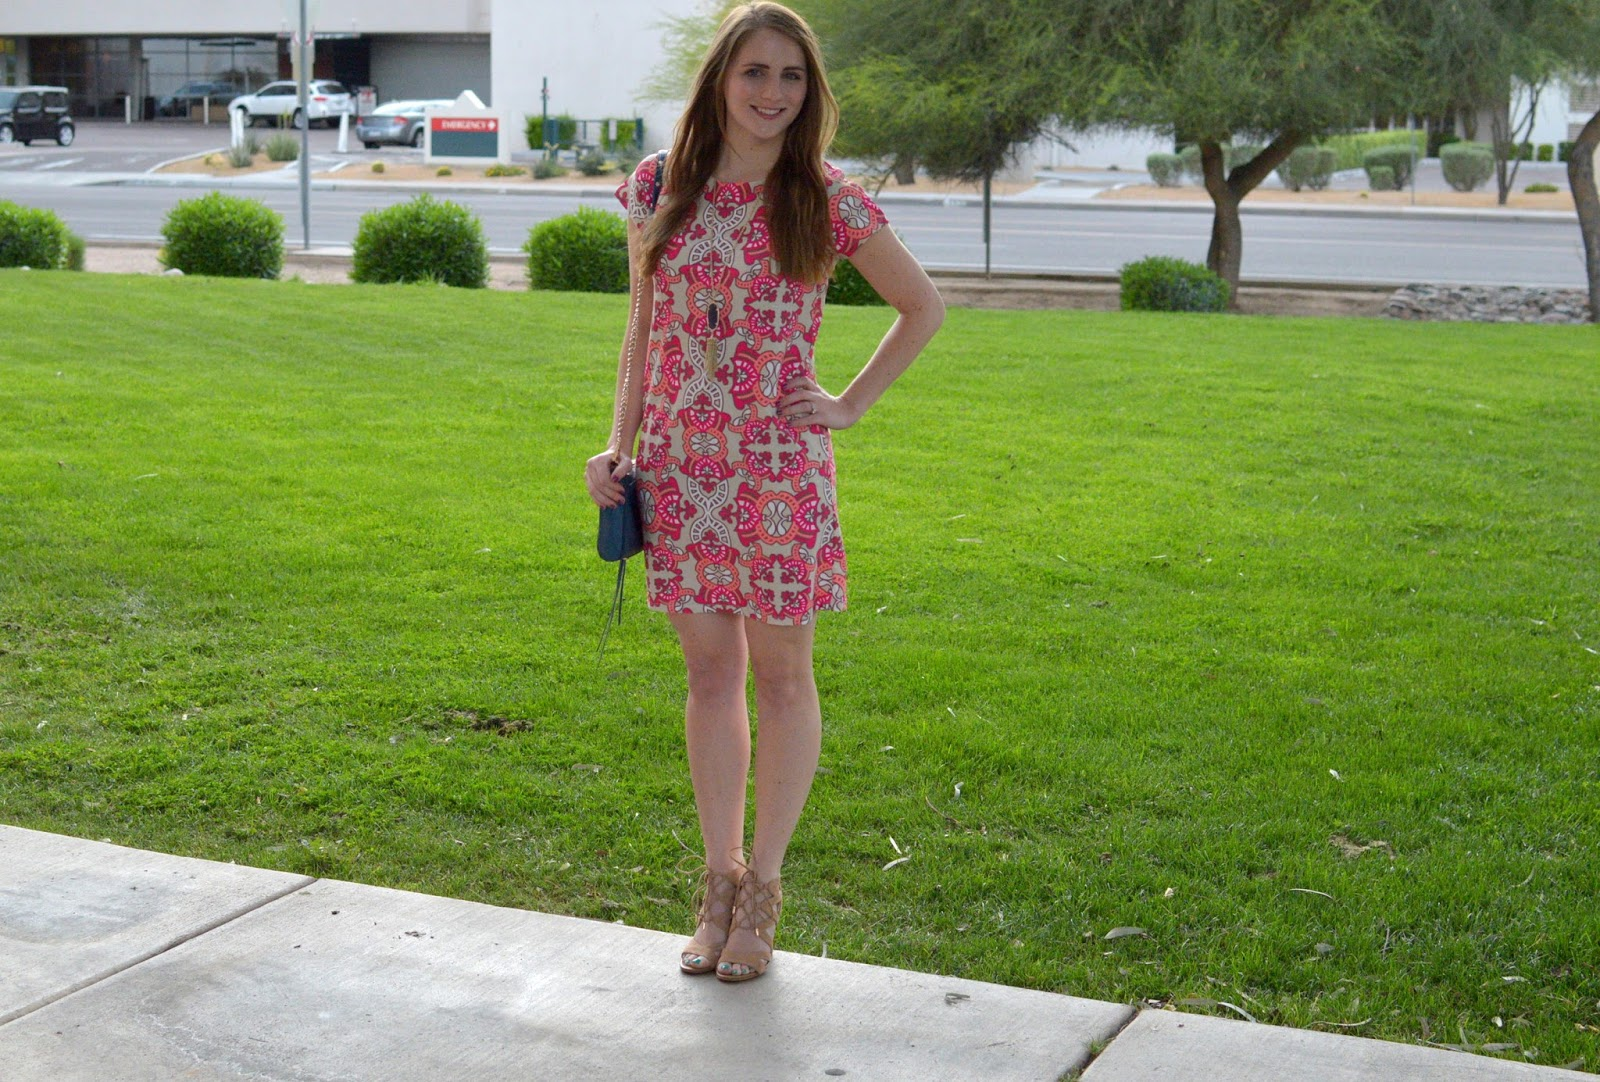 spring outfit ideas: cute printed shift dress for spring